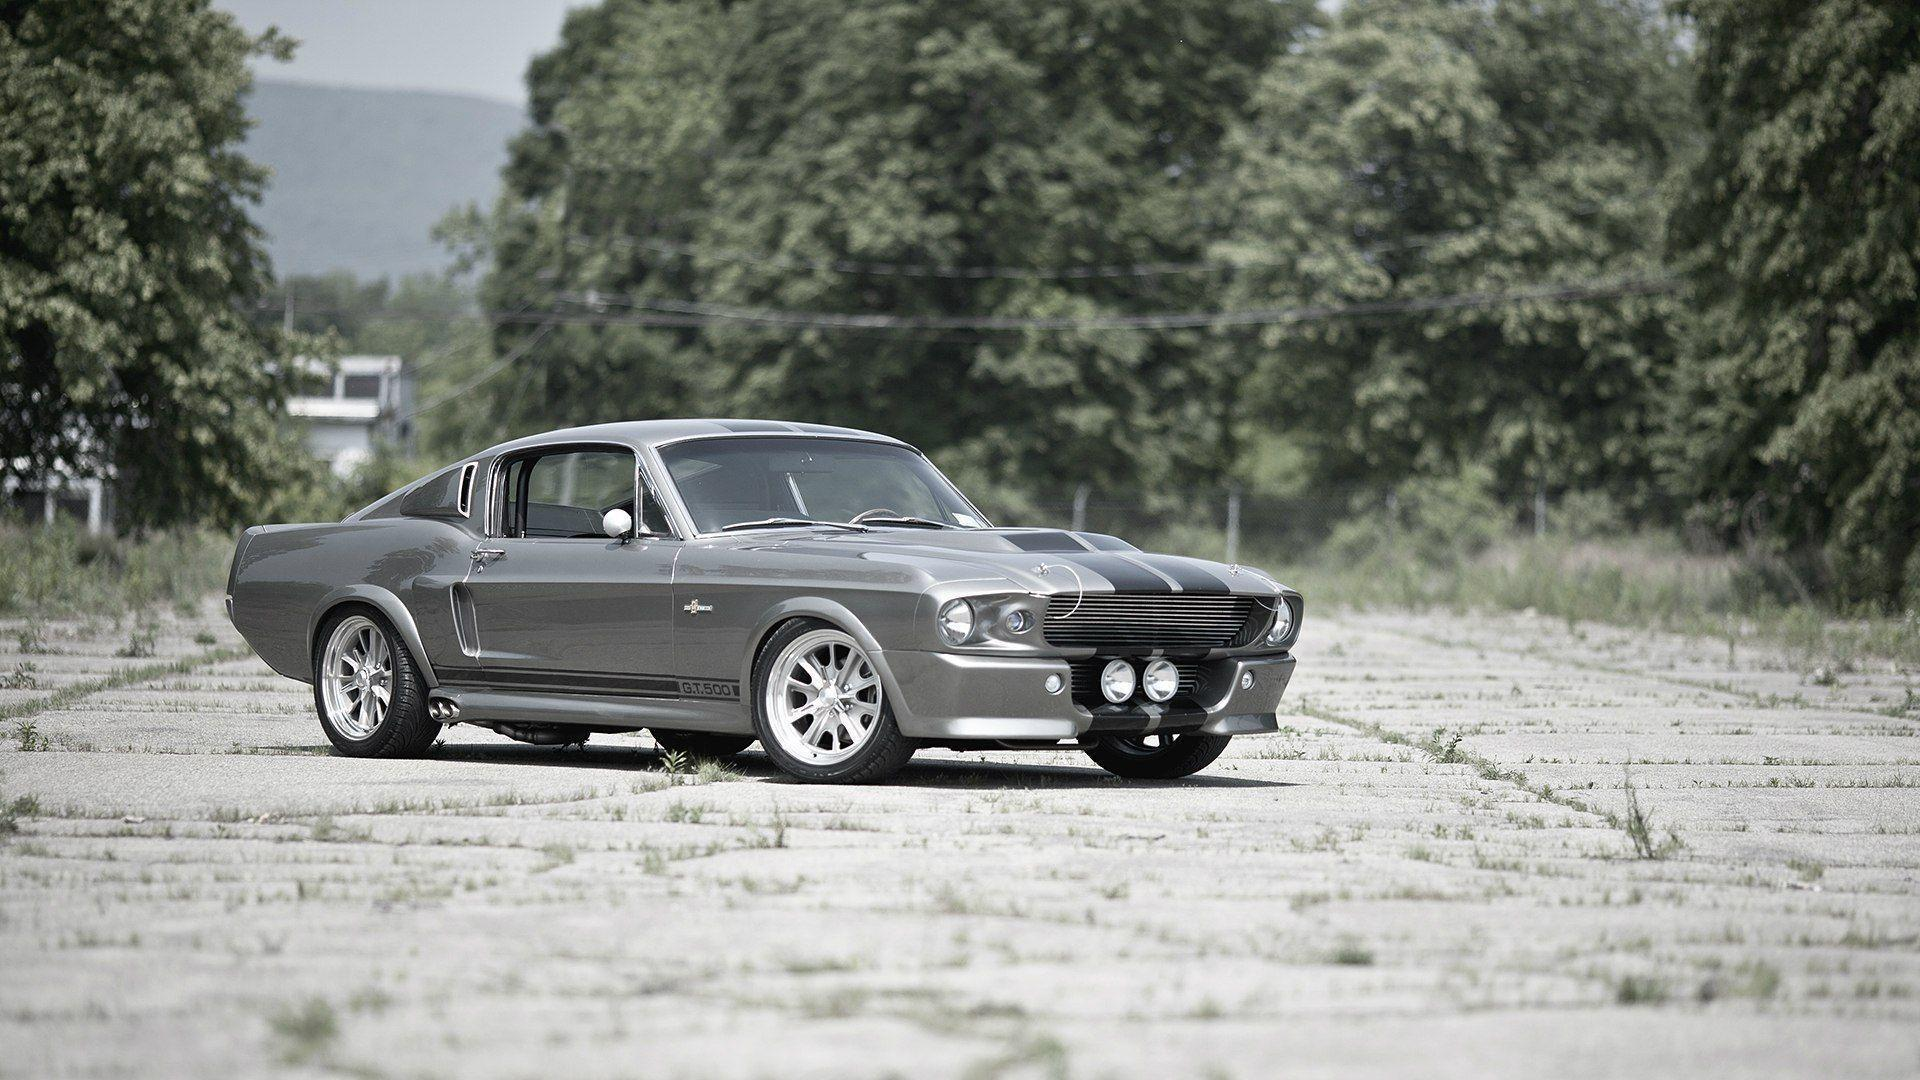 Vehicles For > Ford Mustang 1967 Shelby Gt500 Wallpapers